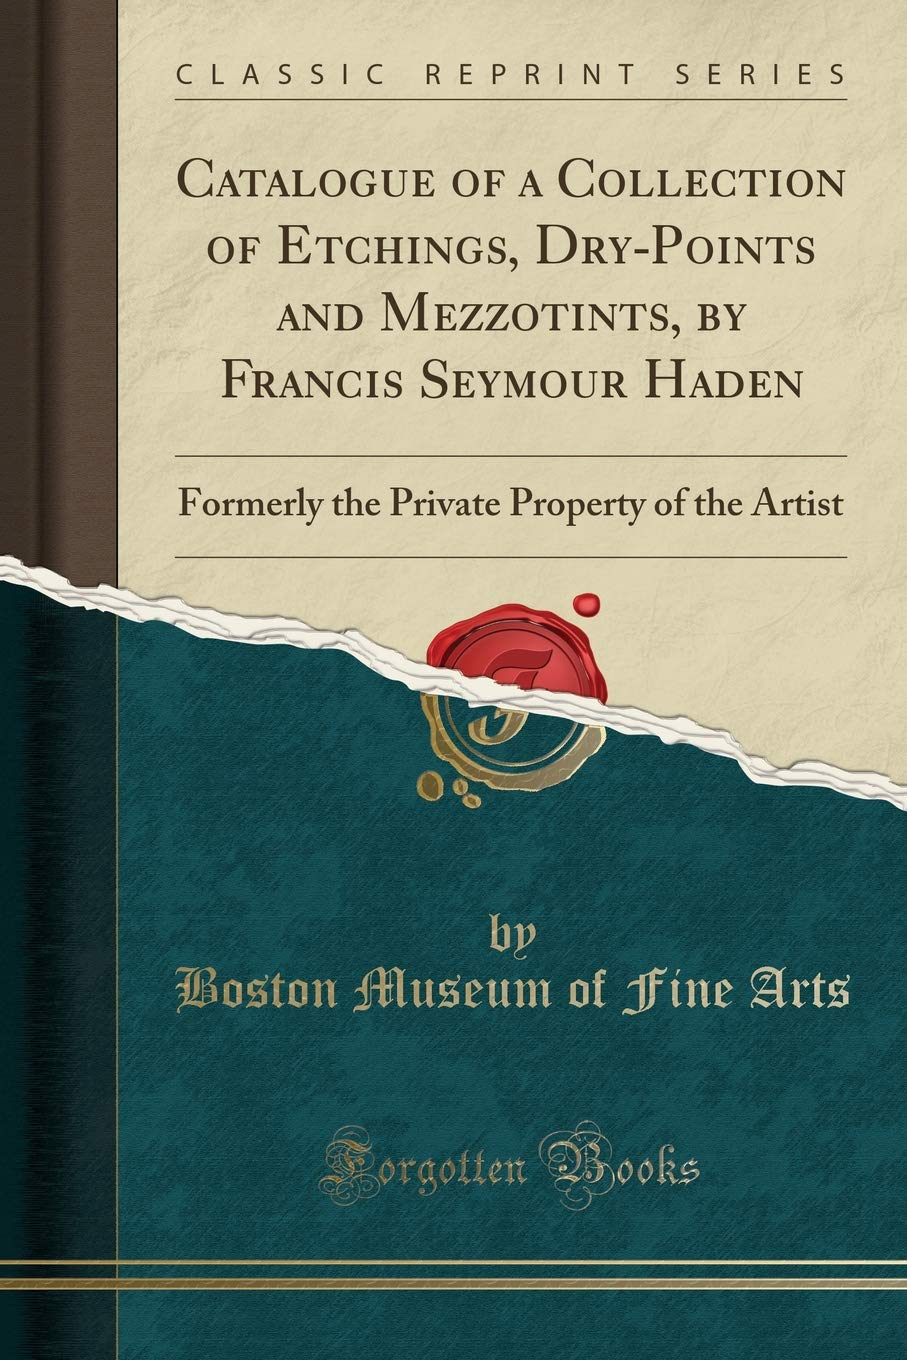 Catalogue of a Collection of Etchings, Dry-Points and Mezzotints, by Francis Seymour Haden: Formerly the Private Property of the Artist (Classic Reprint) pdf epub